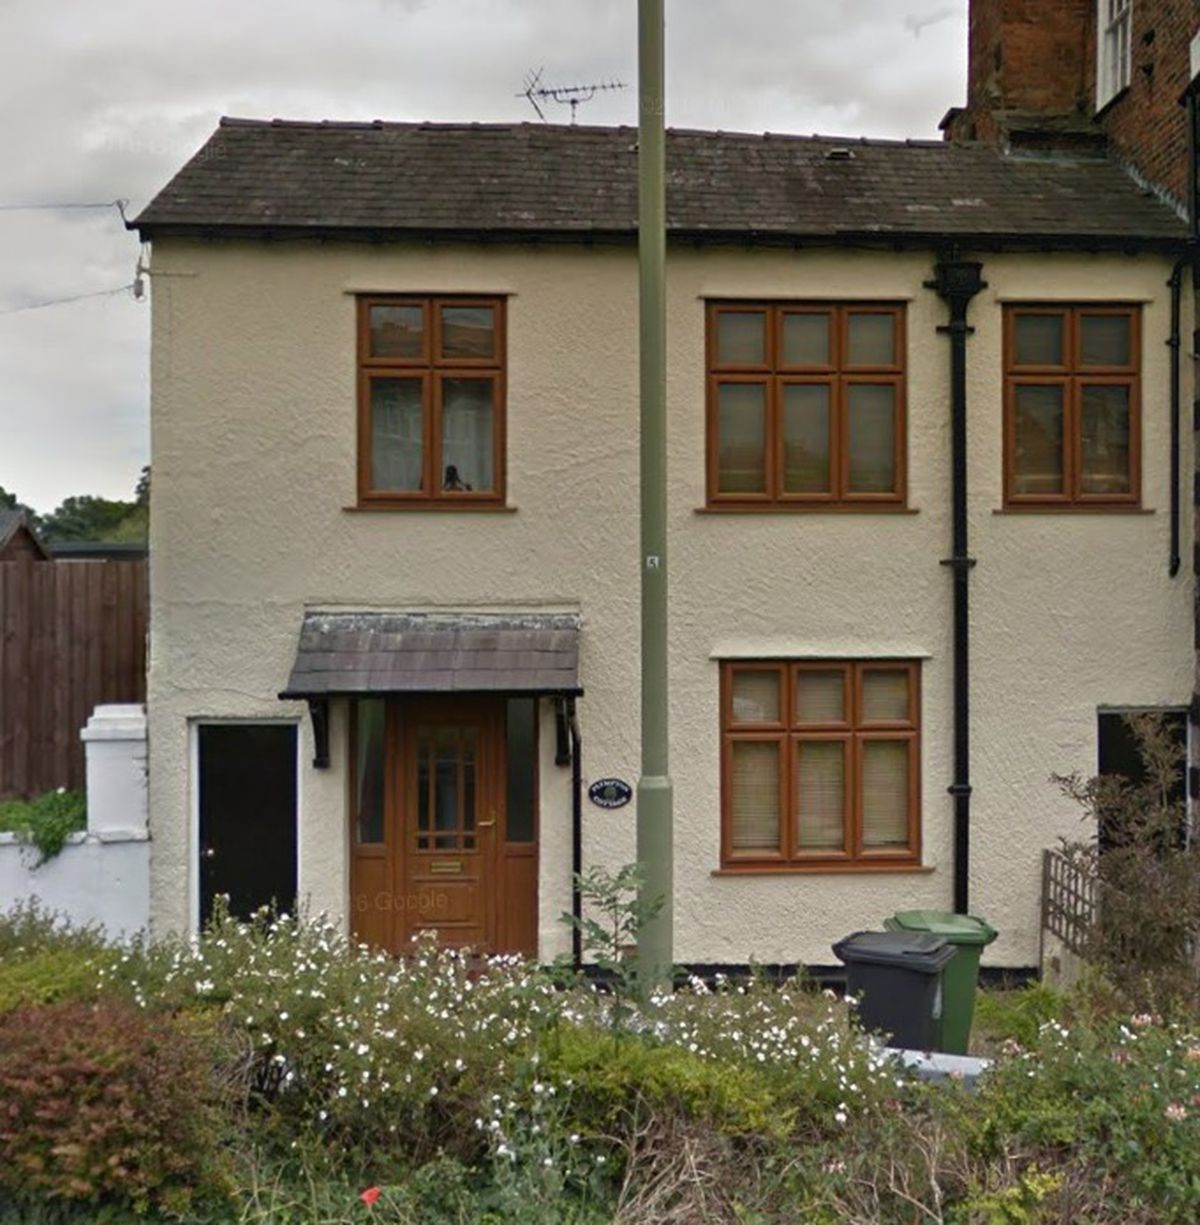 Plympton Cottage in Whitchurch. Pic: Google Street View